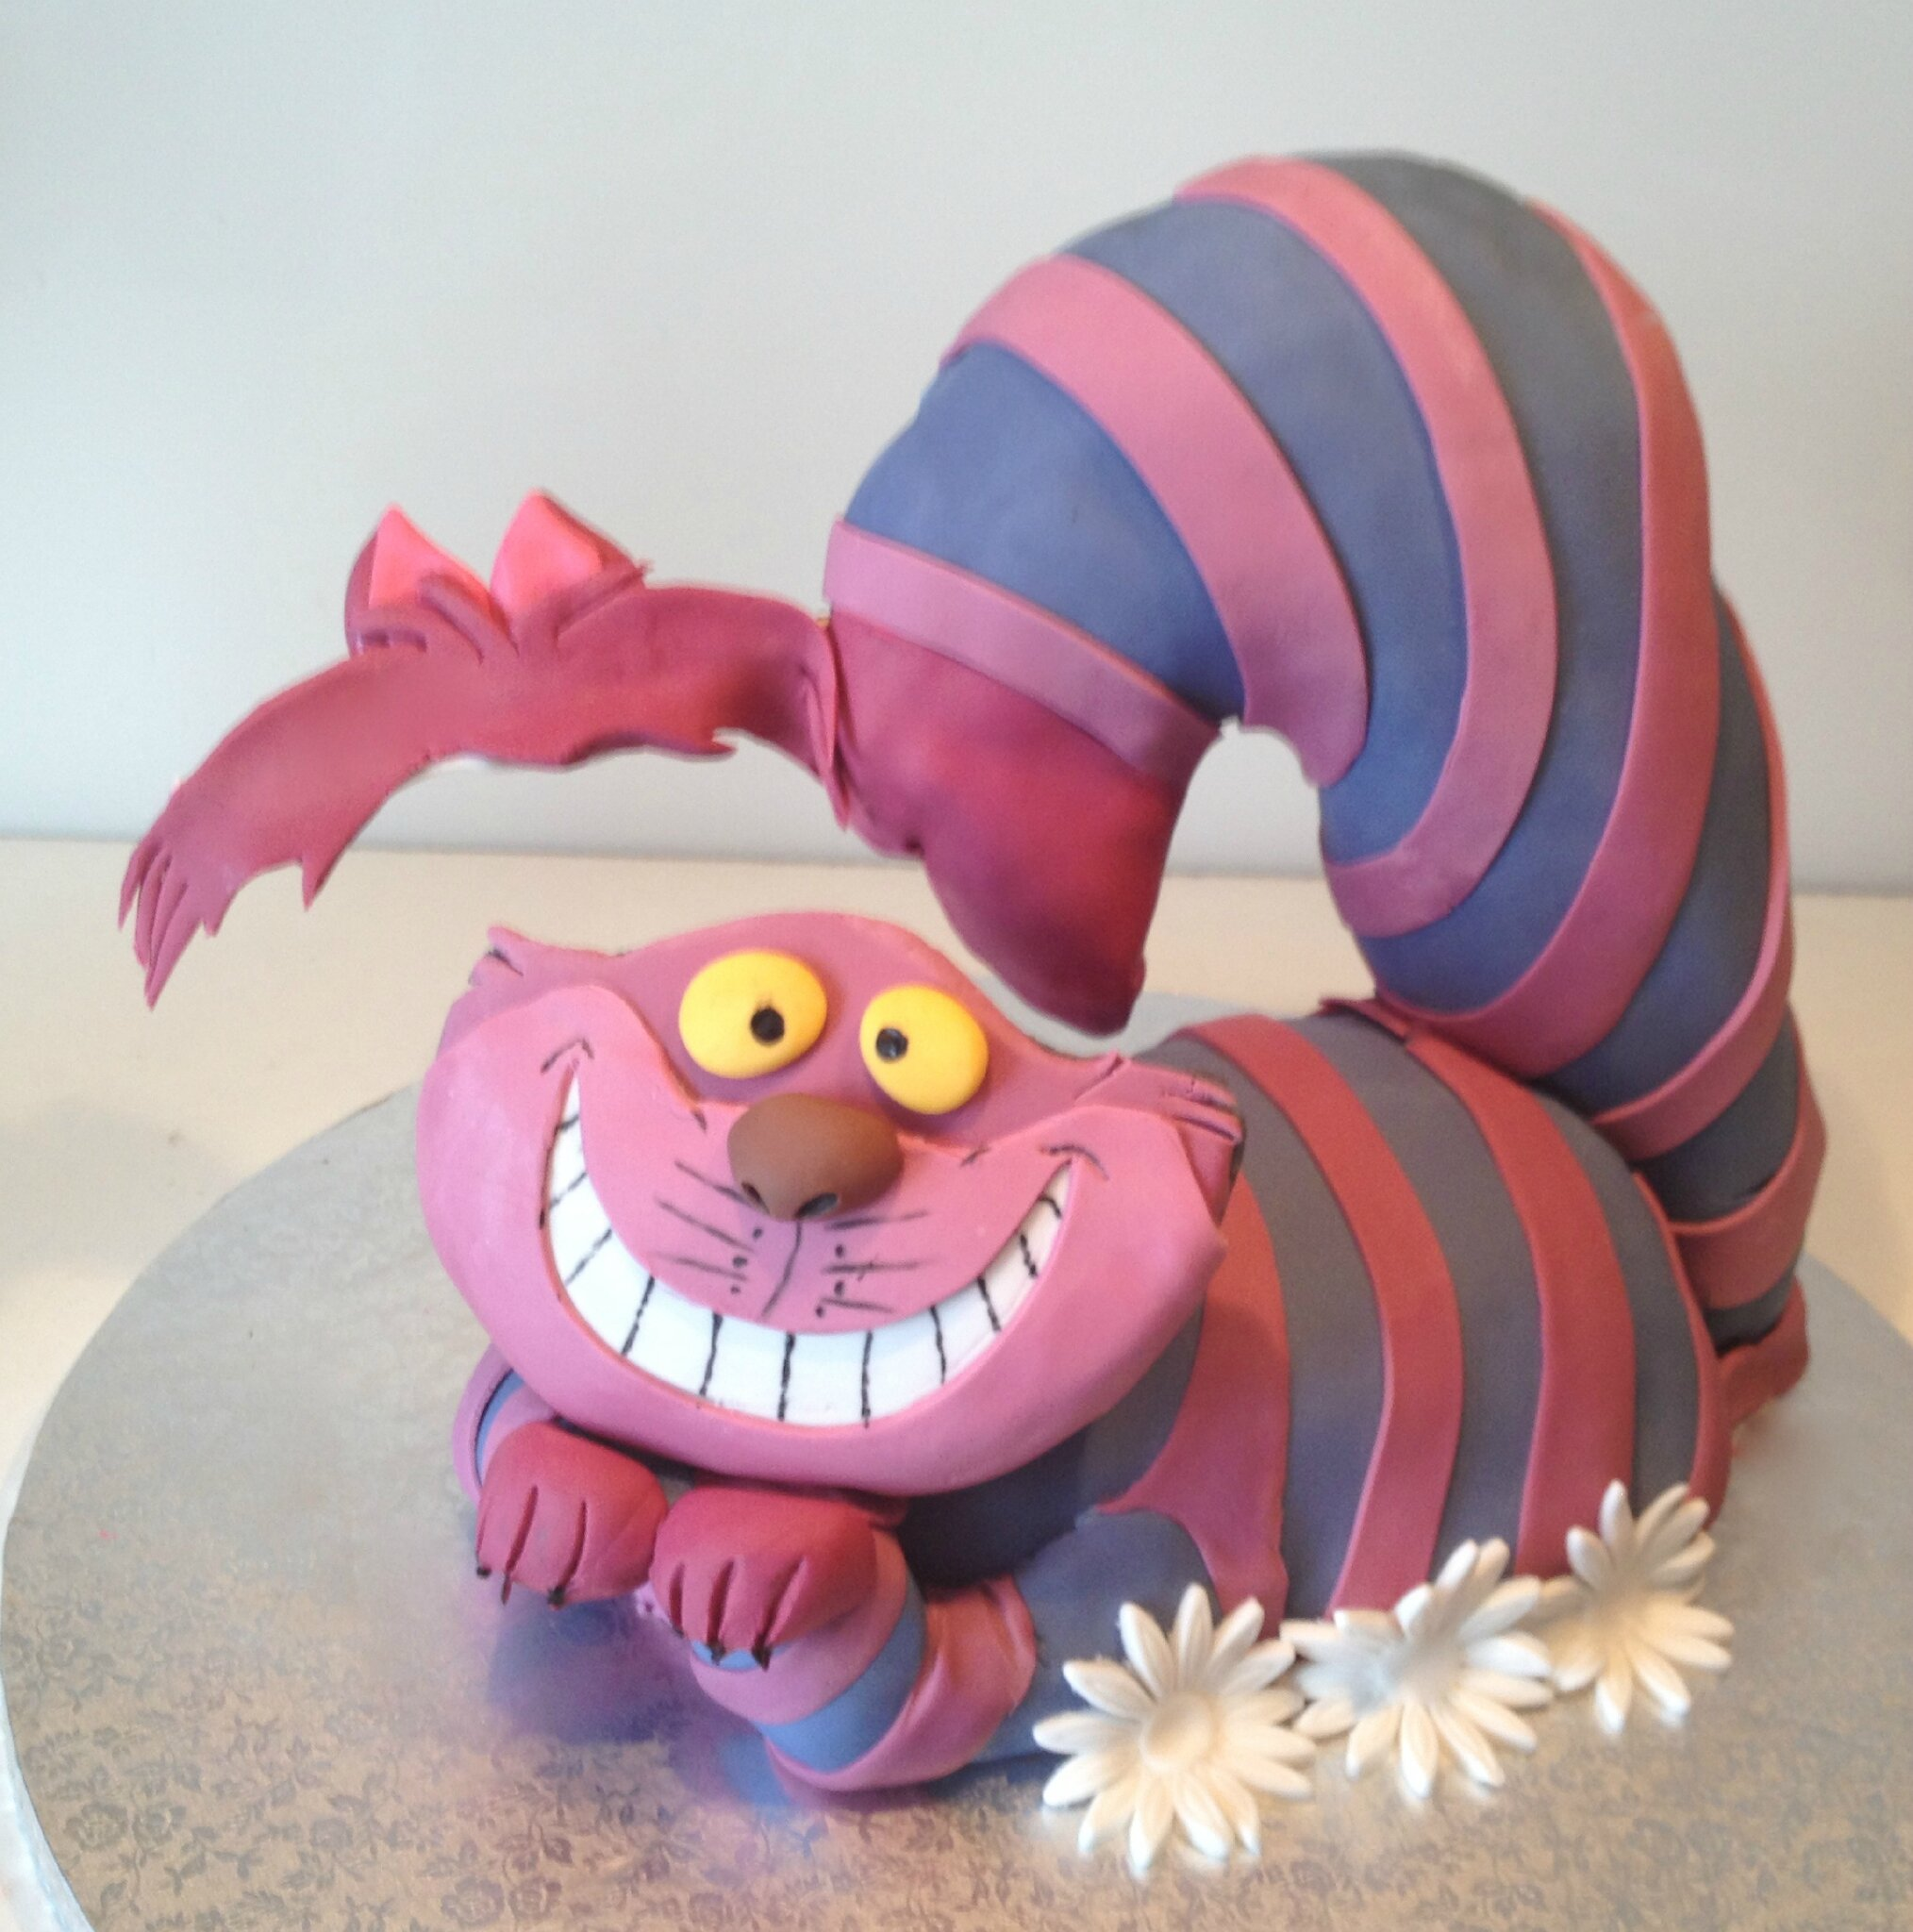 Gâteau Le Chat du Cheshire